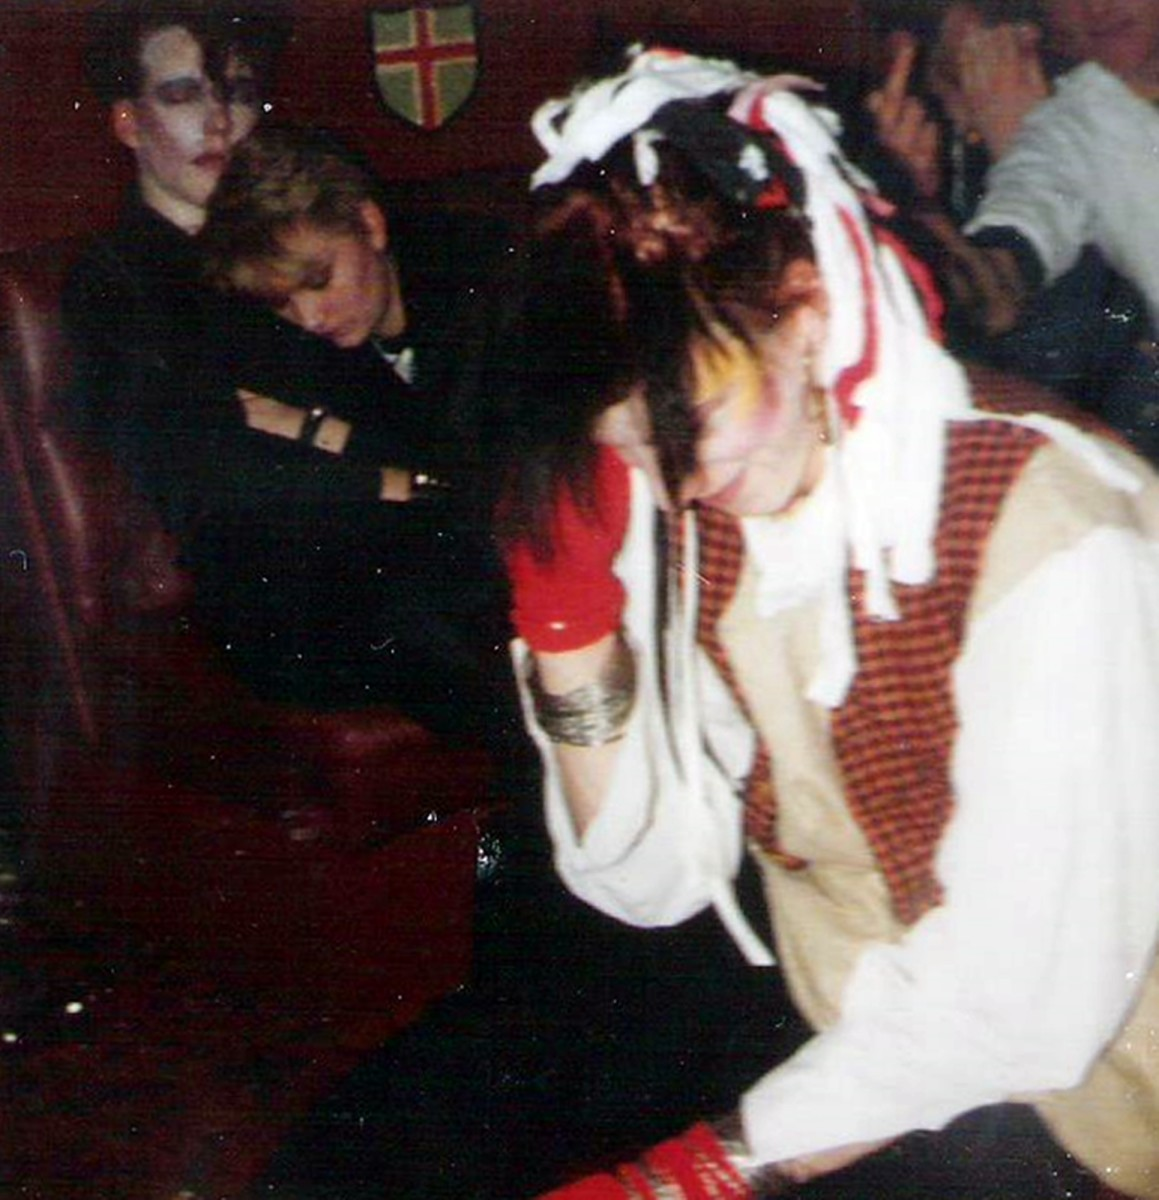 My friend Michael (Dowie) used to have black hair, with all sorts of ribbons and rags intertwined. He used to remind me of Pete Burns of Dead or Alive.